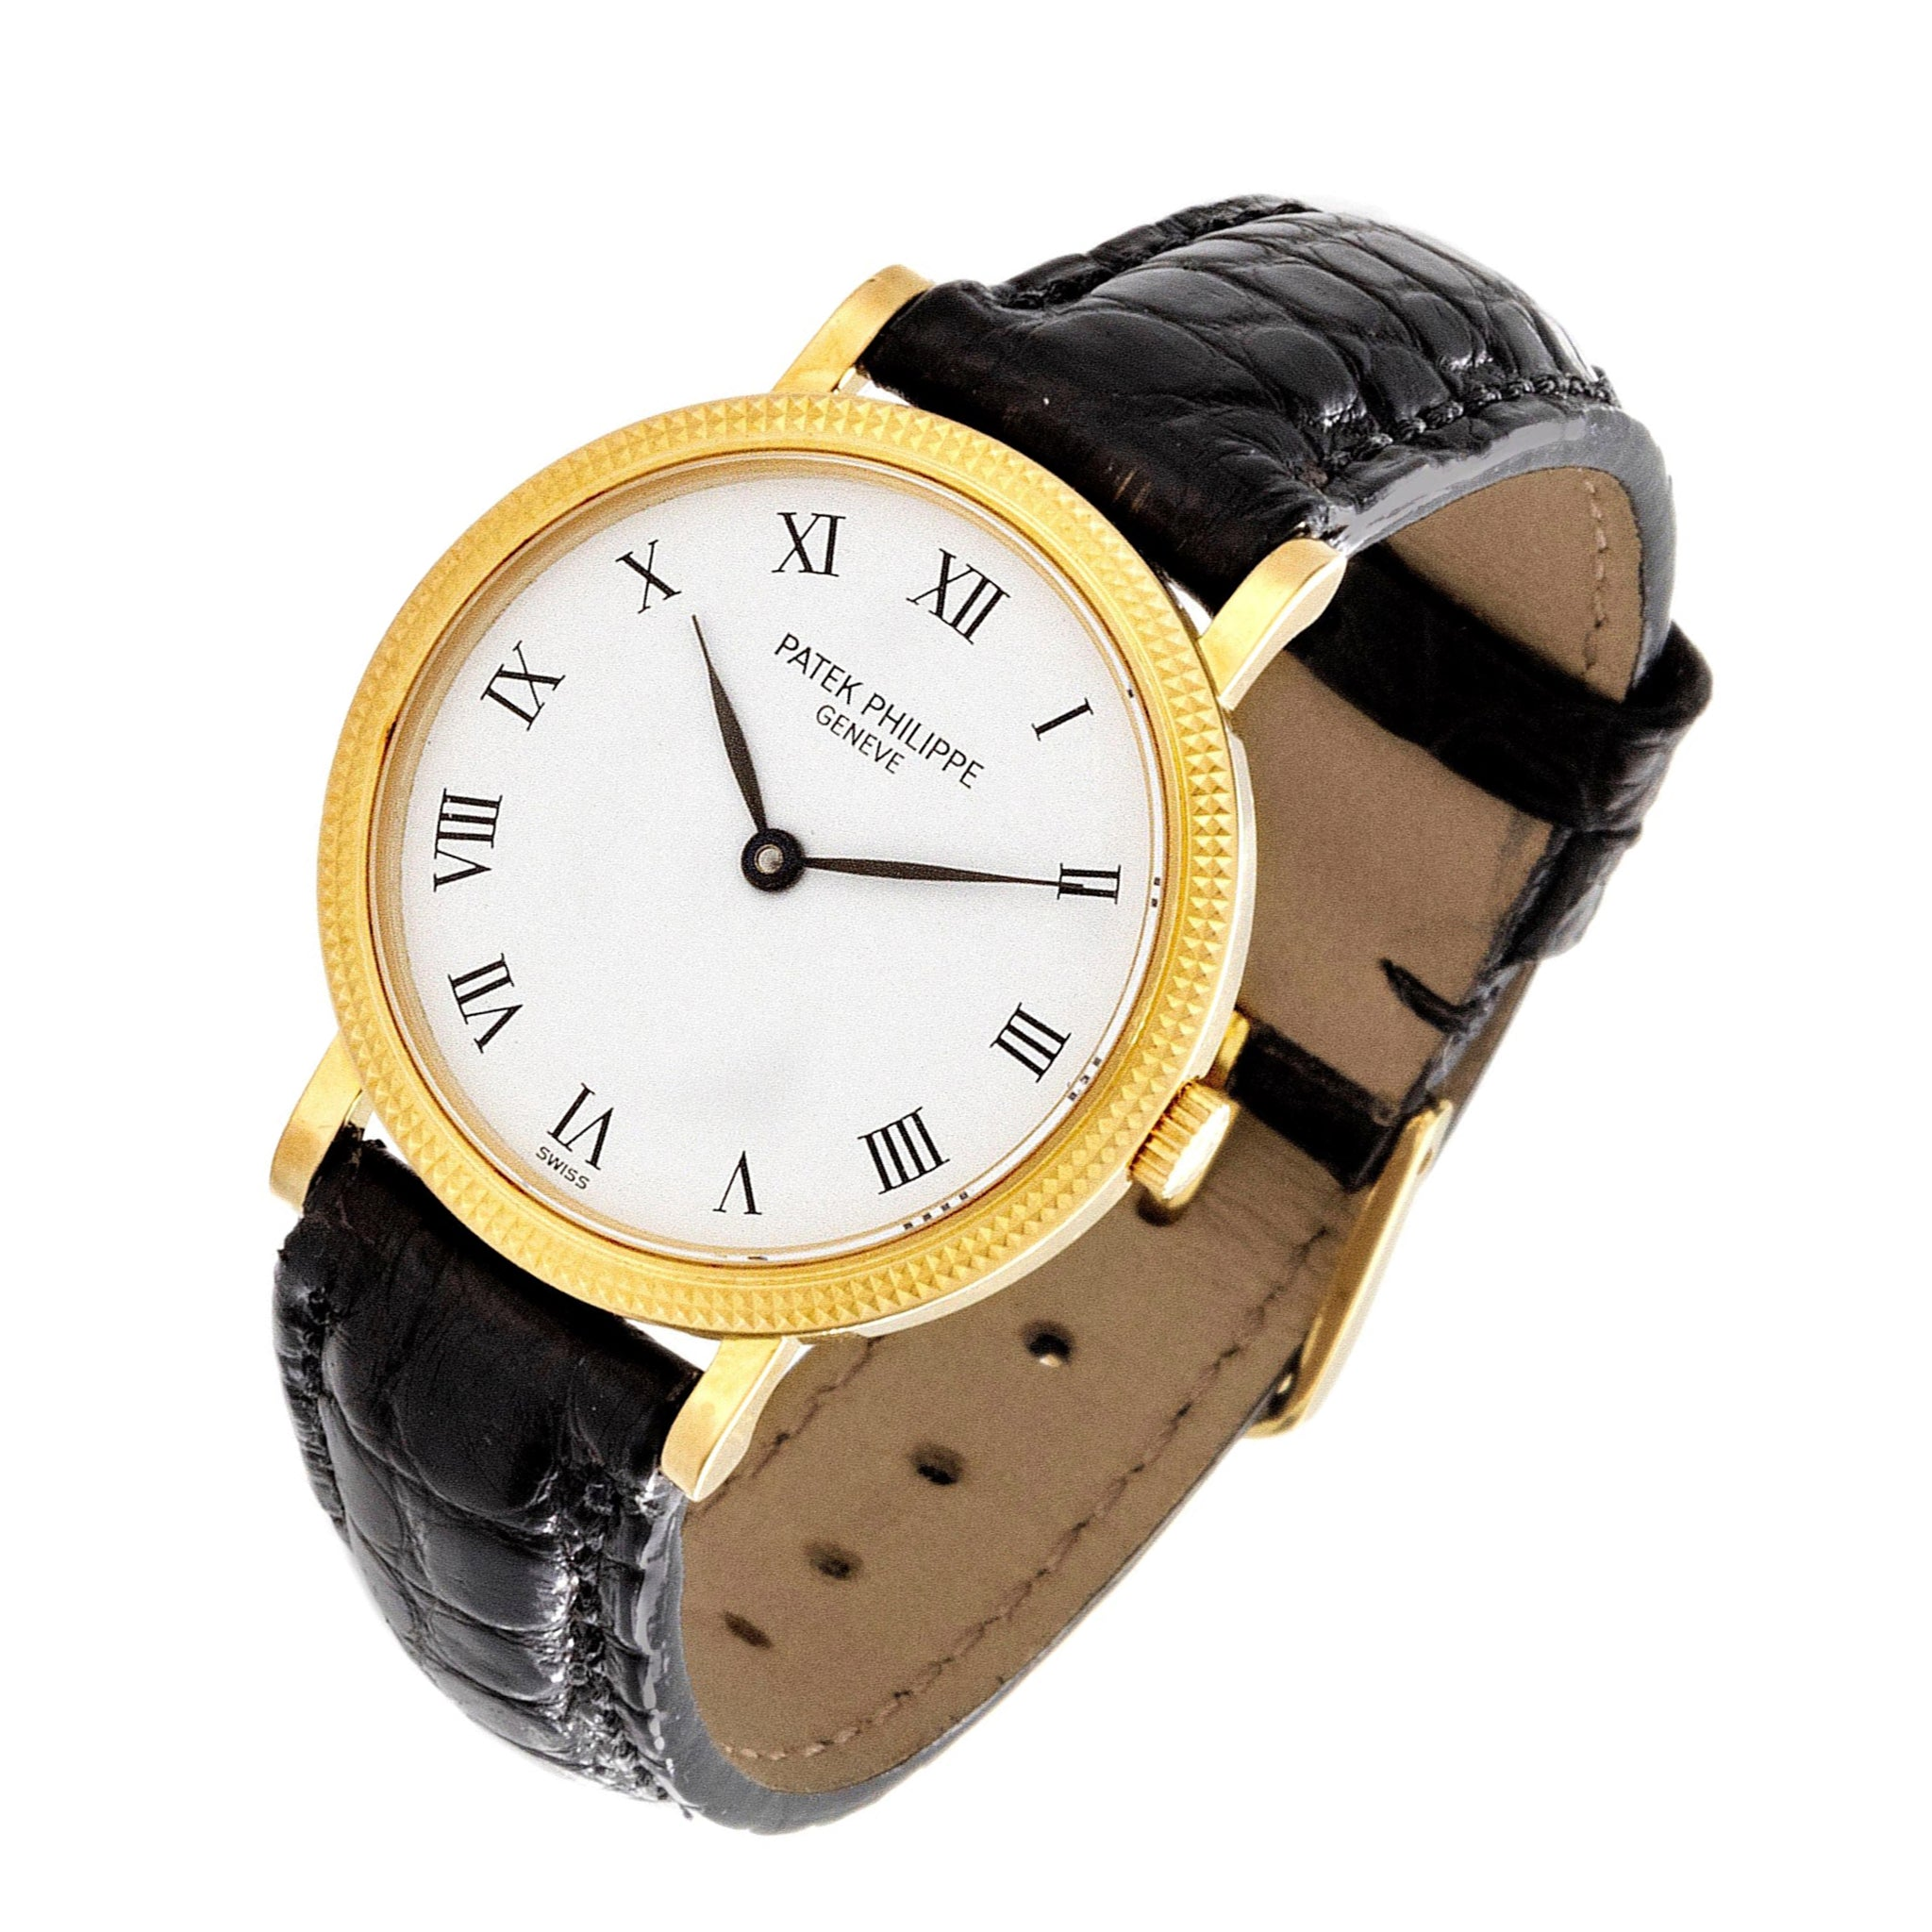 Patek Philippe 4819J Ladies Calatrava Watch